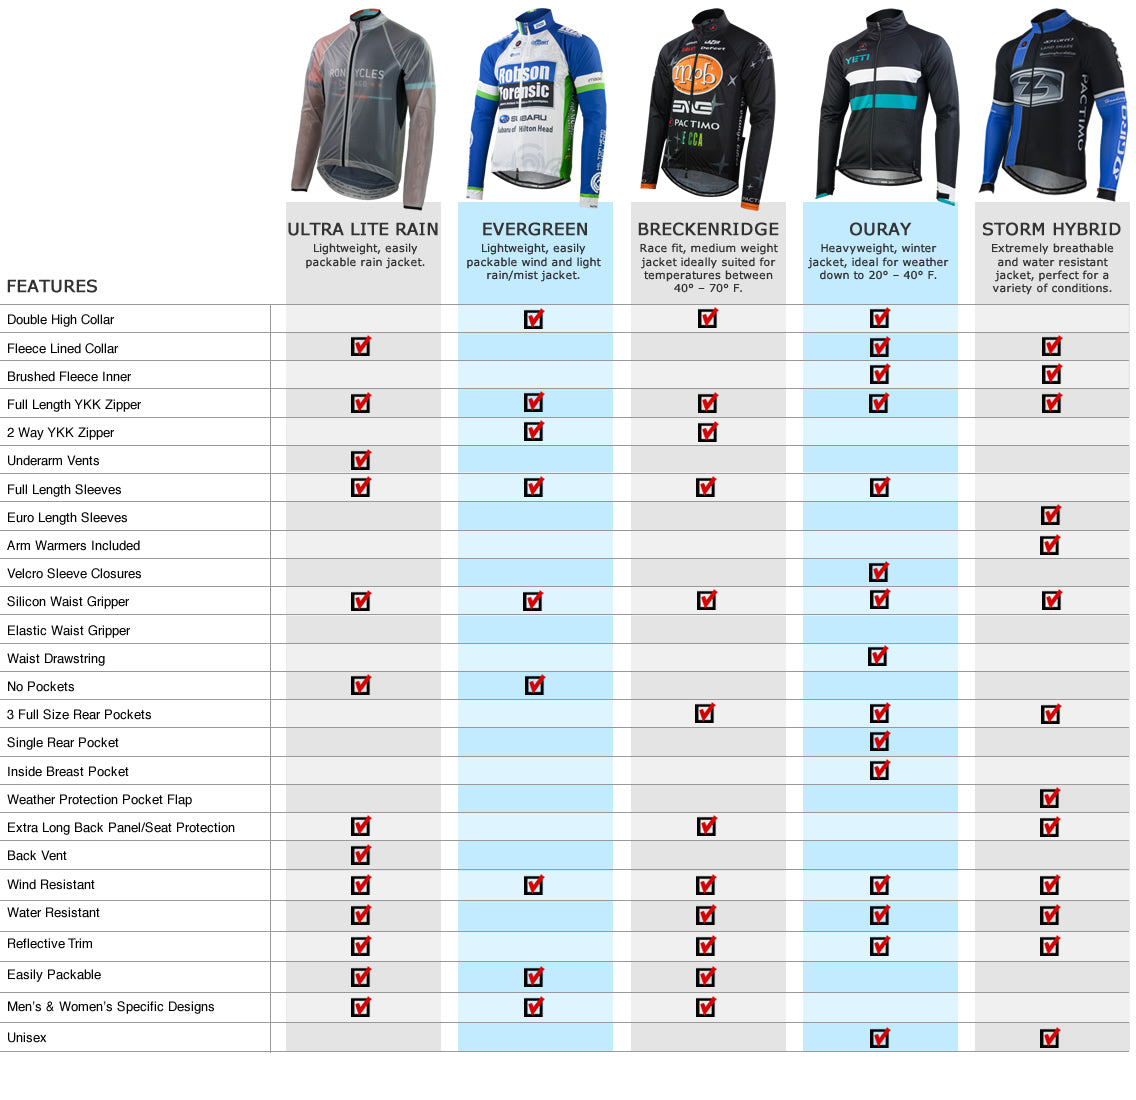 Custom Cycling Jacket Comparison Chart